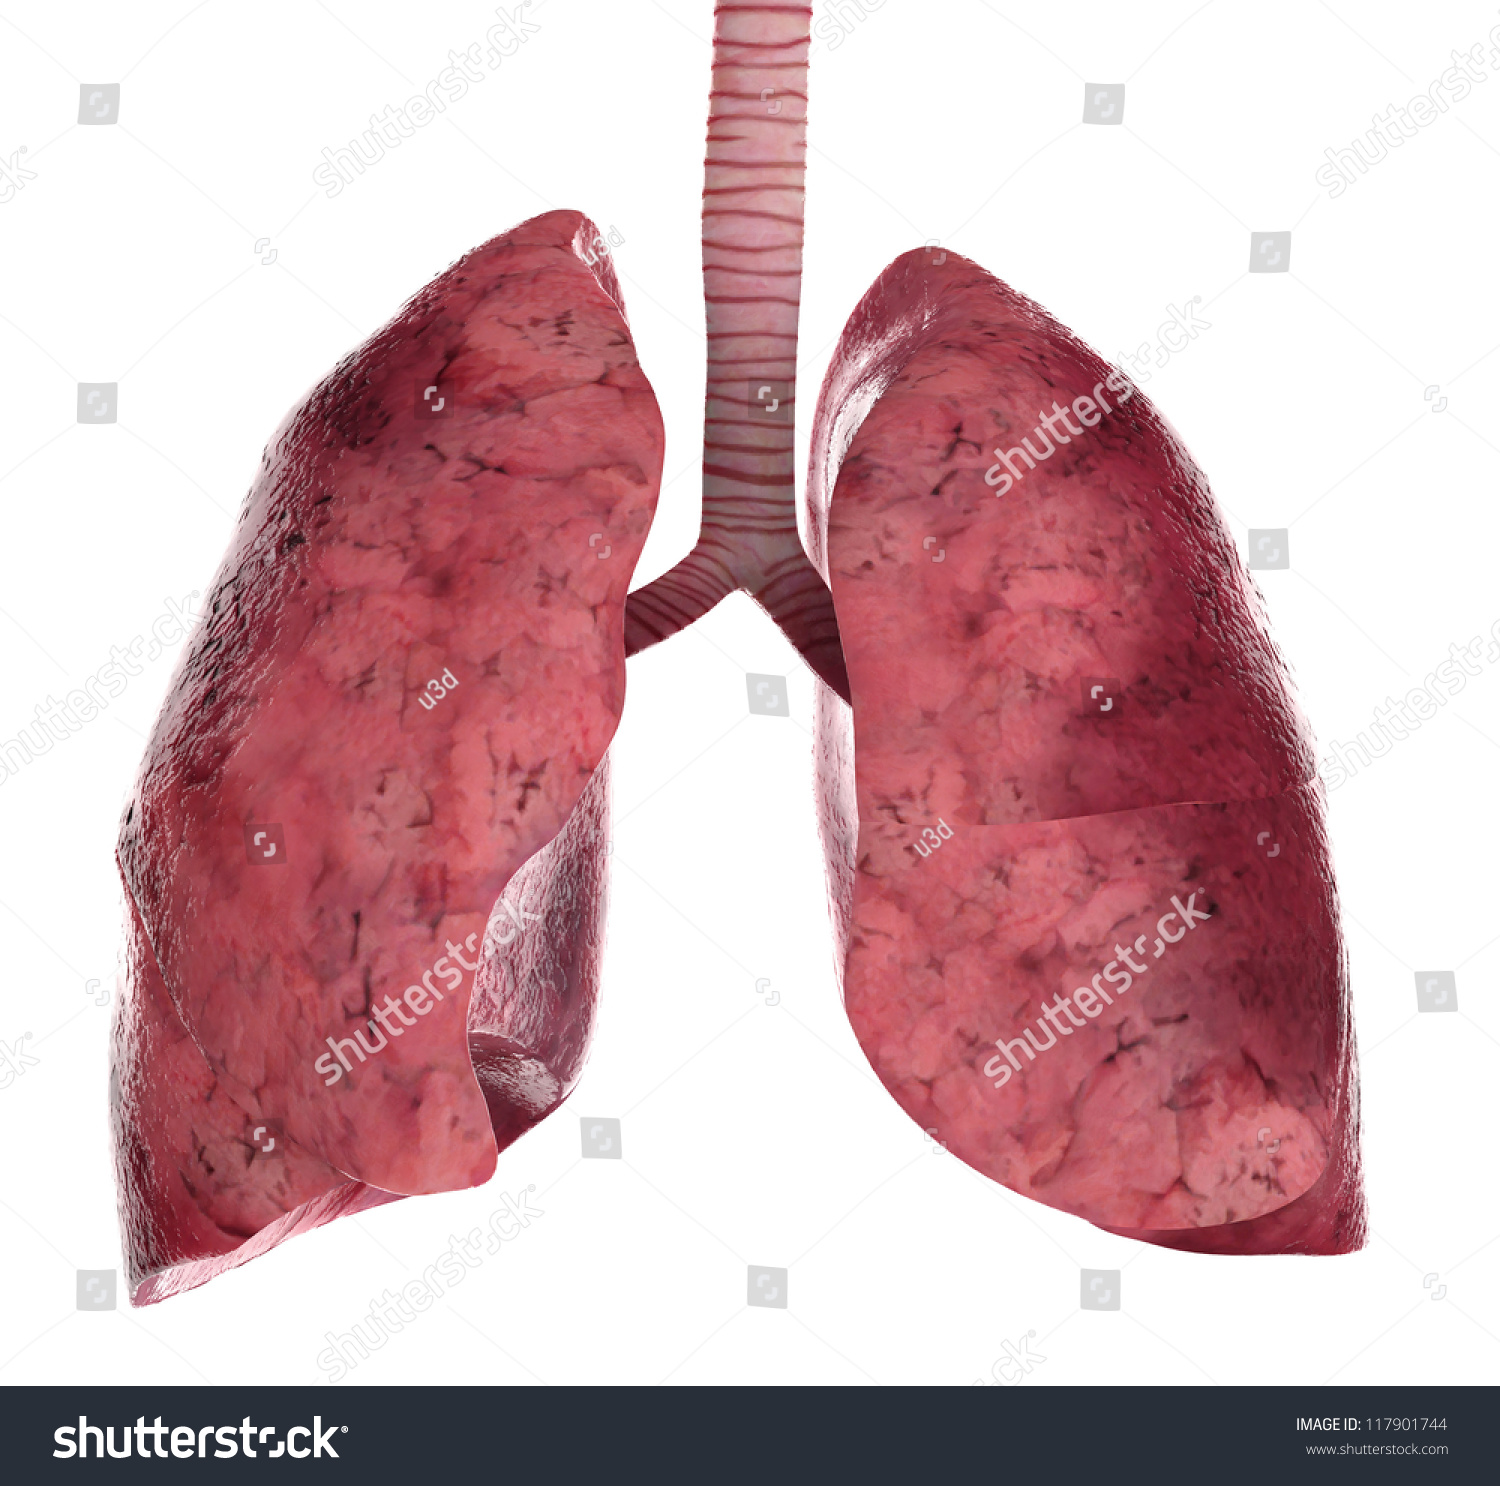 human lungs trachea 3d render stock illustration 117901744, Cephalic Vein